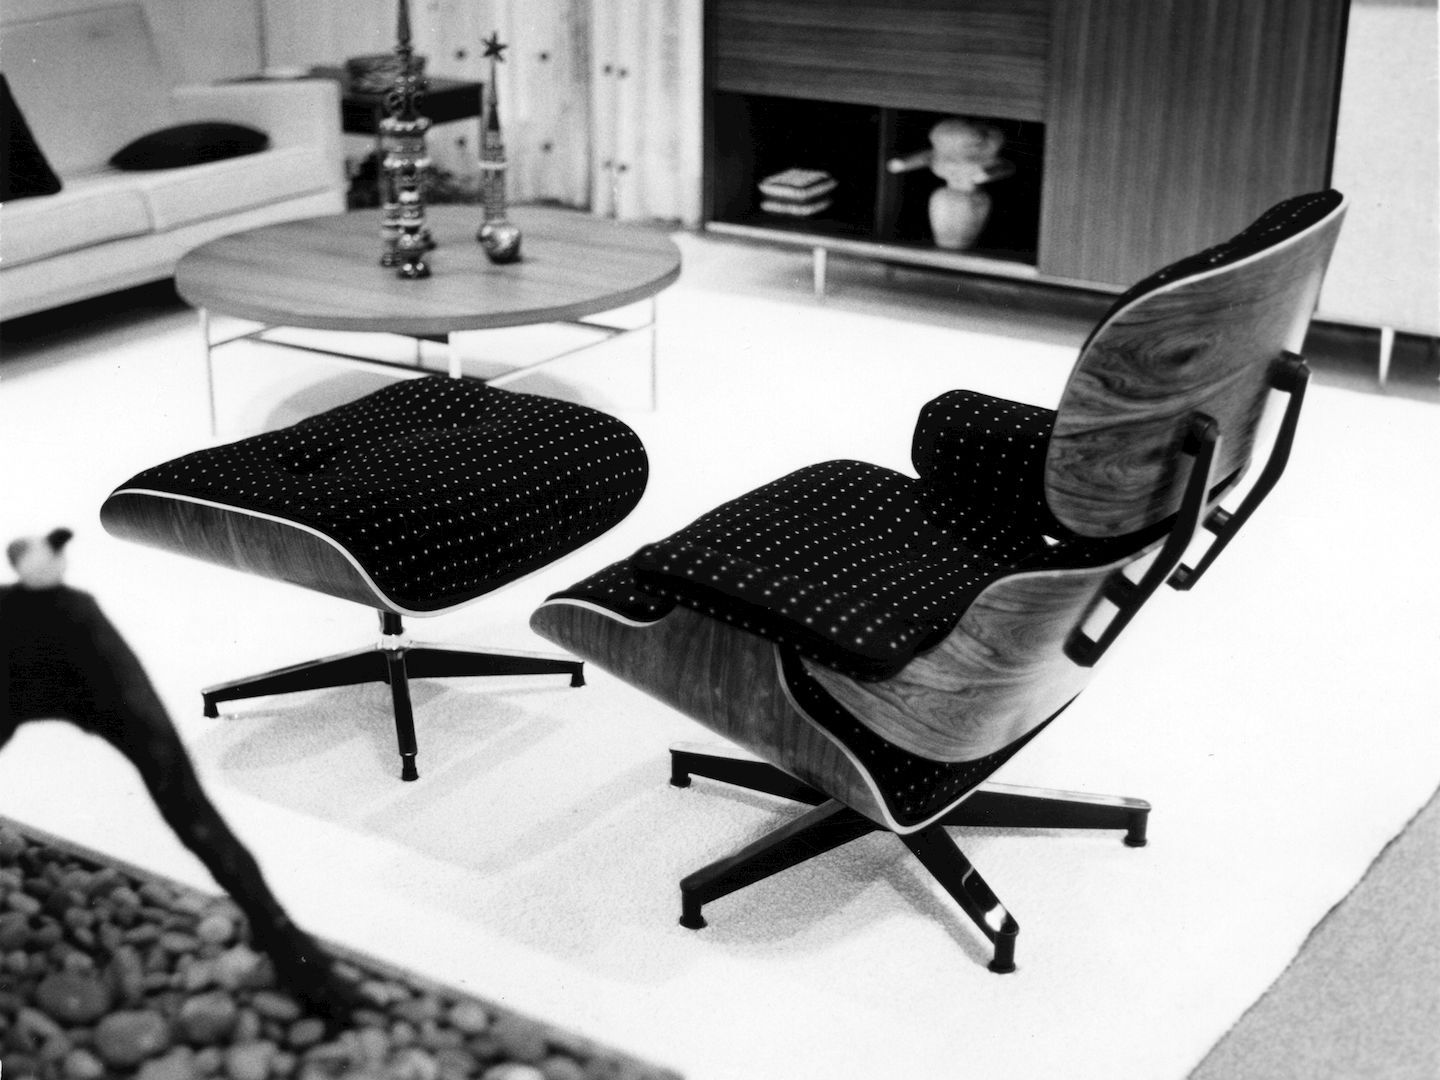 Vitra Eames Lounge Chair Black Eames Lounge Chair And Ottoman In Fabric Vitra Image Eames